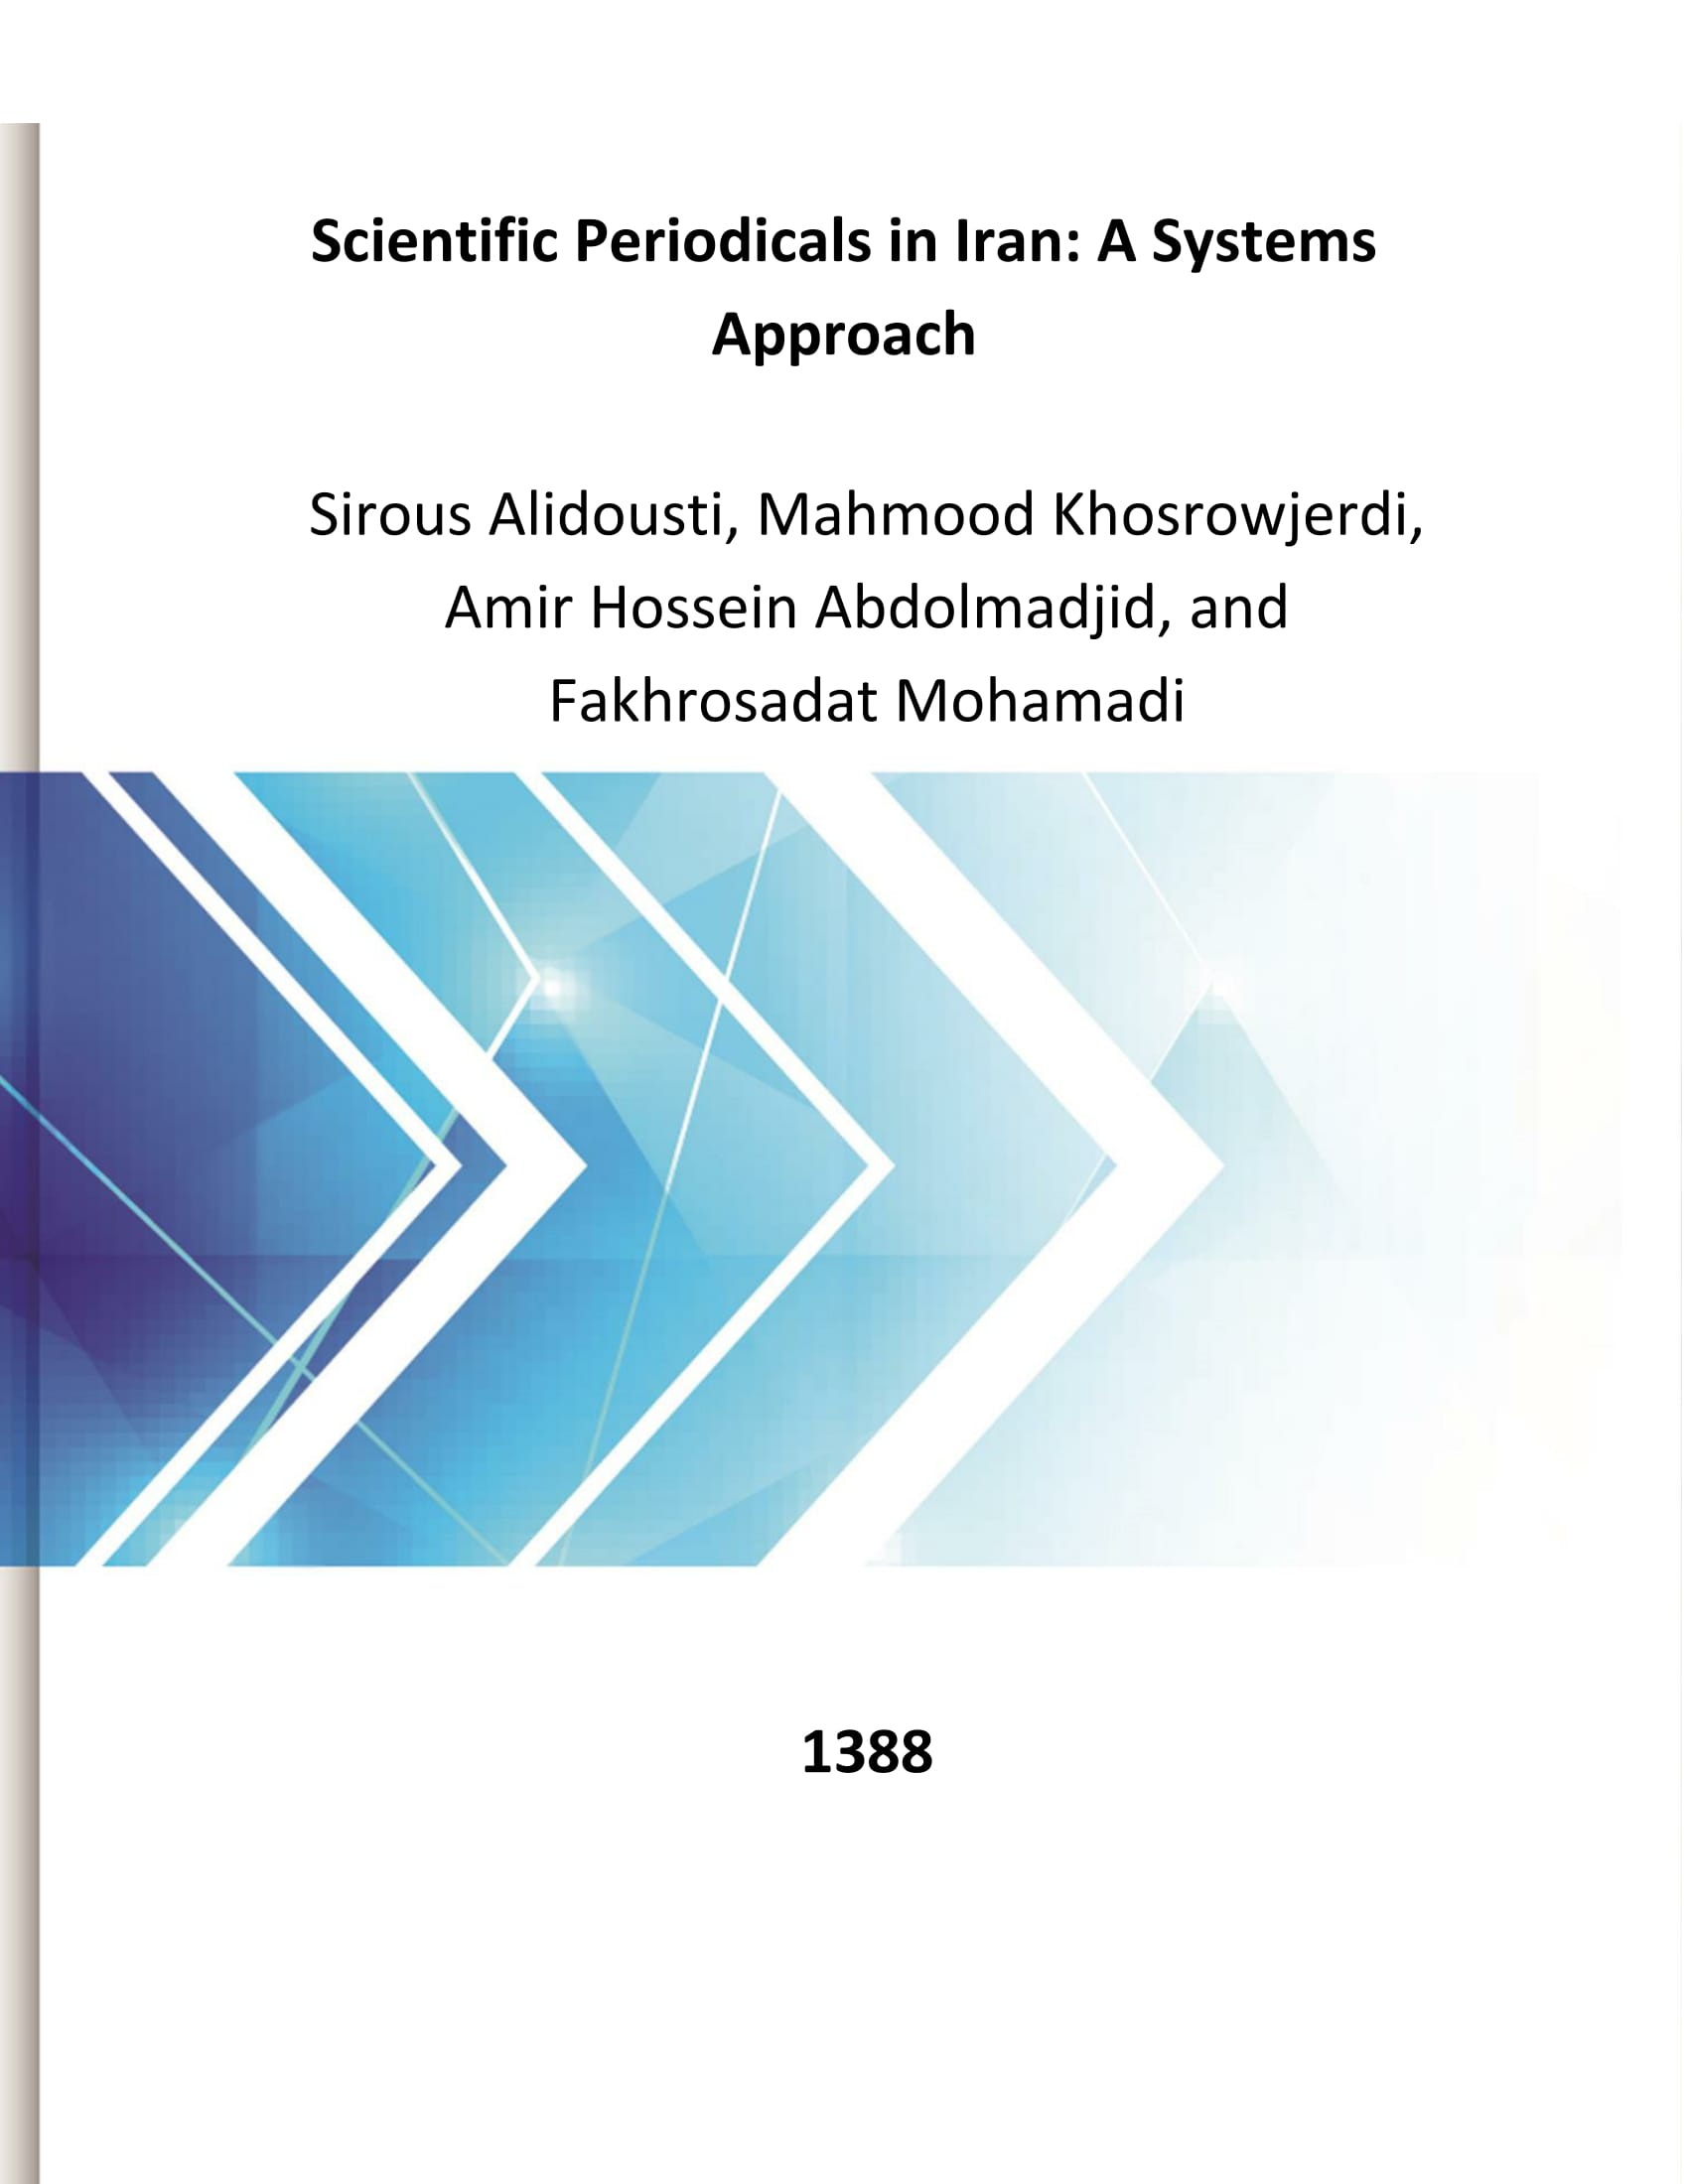 Scientific Periodicals in Iran: A Systems Approach